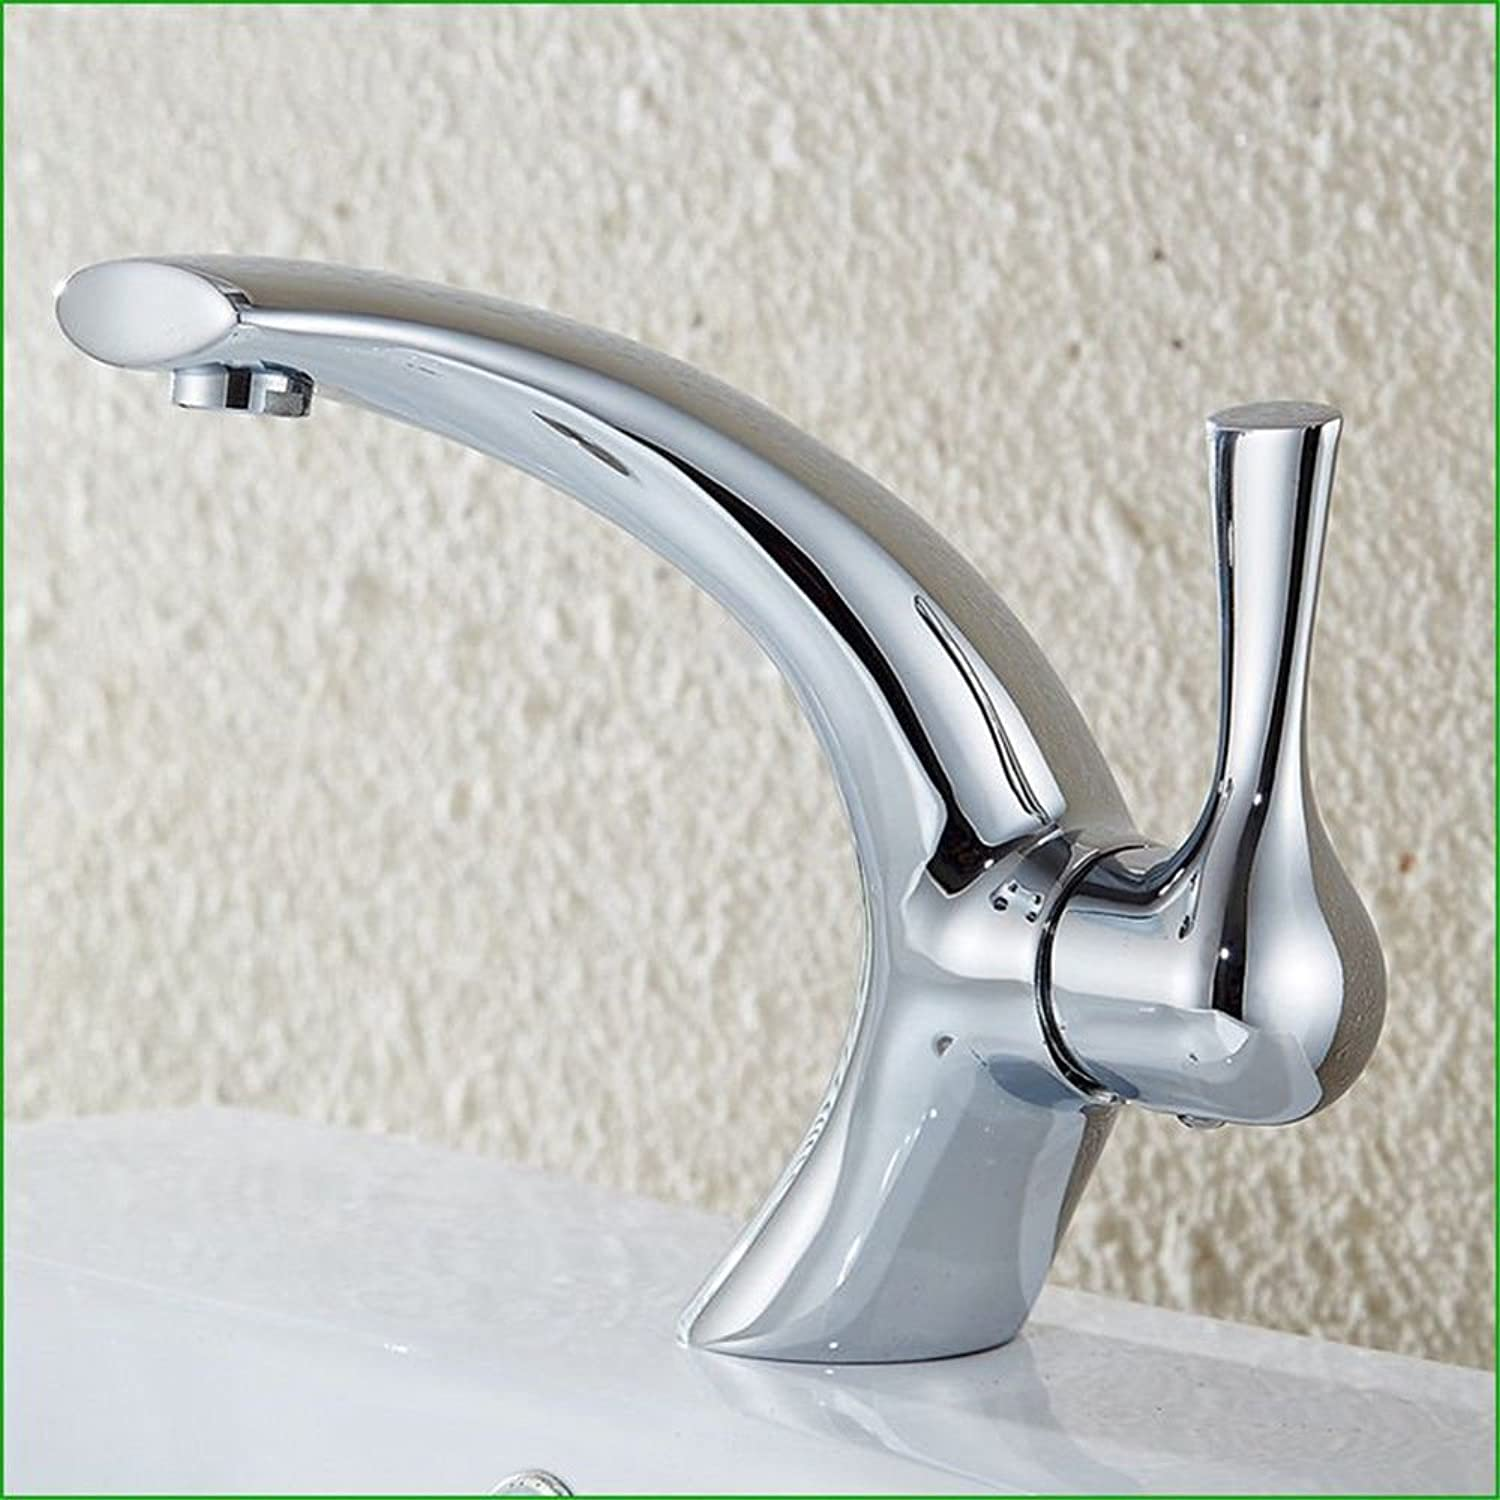 AQMMi Bathroom Sink Mixer Tap Brass Chrome Hot and Cold Water Single Lever Single Lever Taps for Bathroom Sink